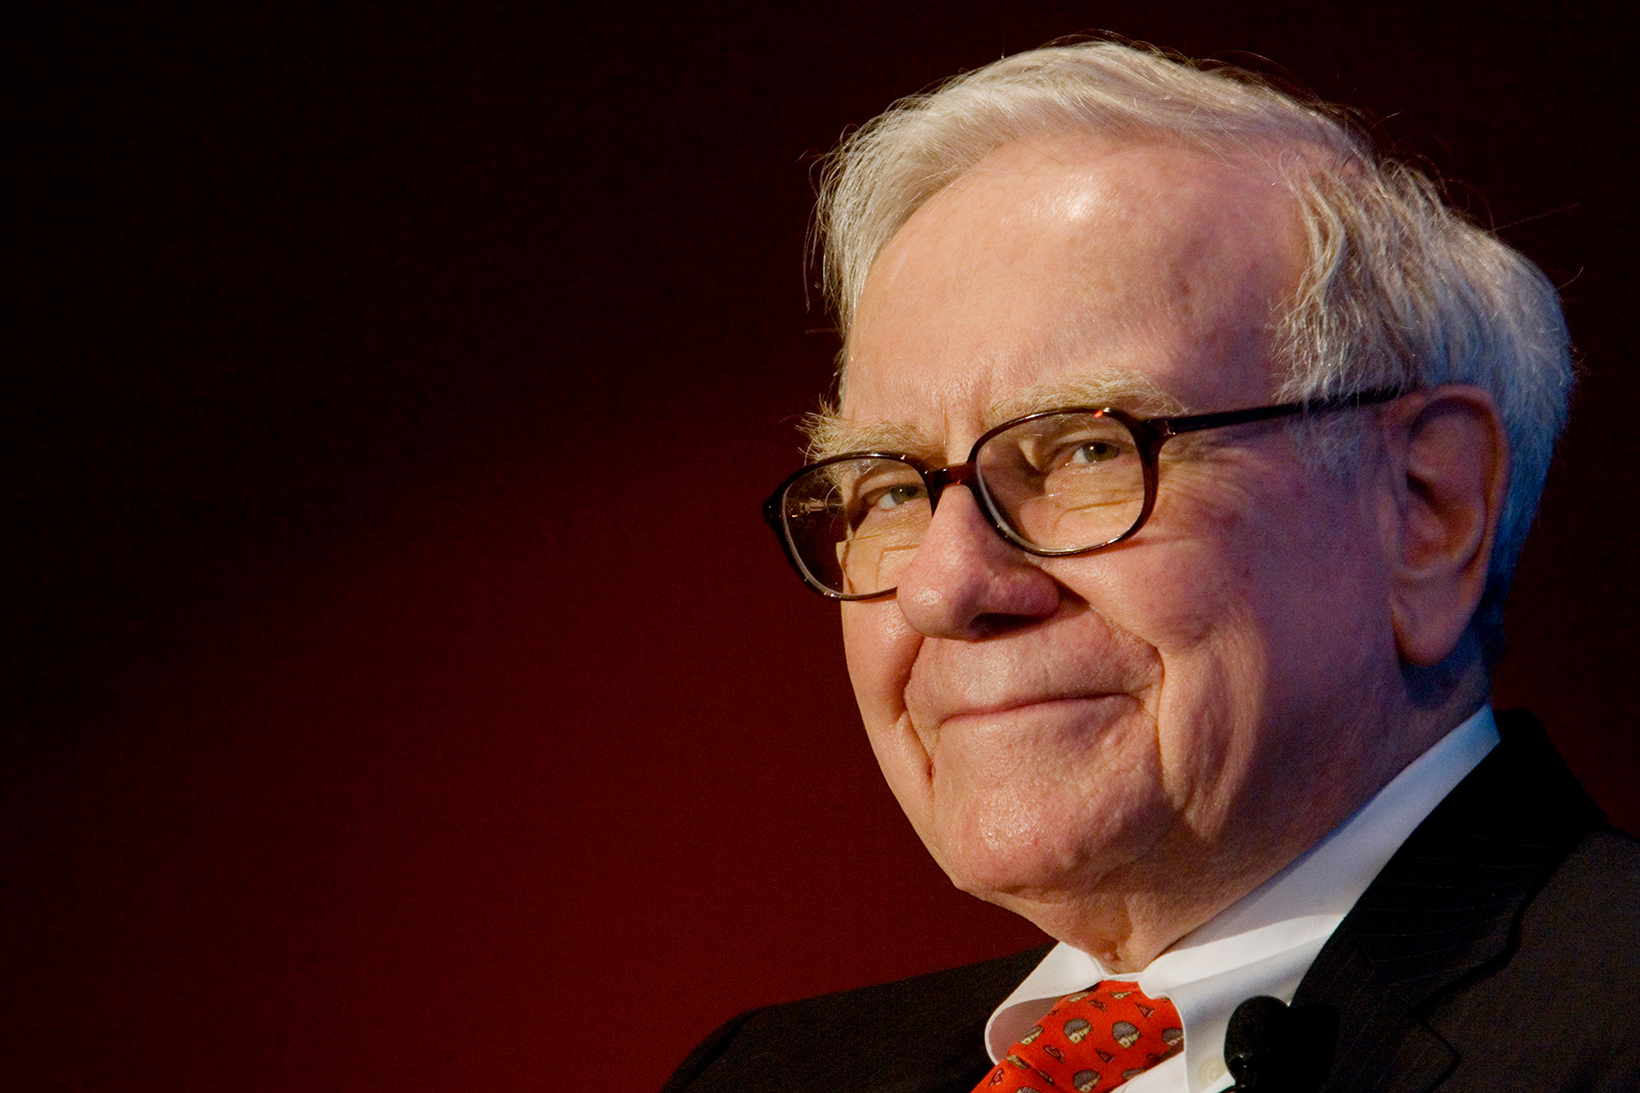 Warren Buffett's Investment In Apple Increases It's Stock. Want to Know the Size of the Increase?